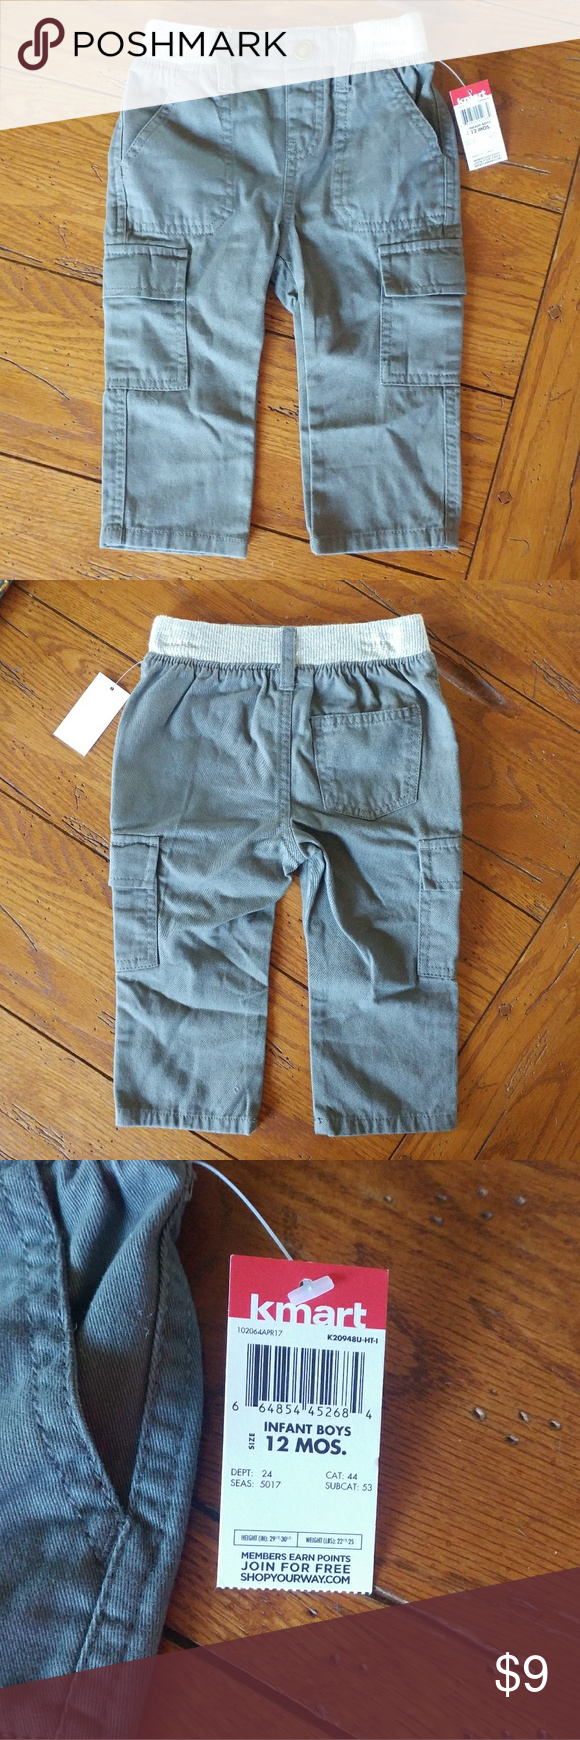 f2a46f284 NWT 12 Month Boys Gray Cargo Pants Kmart WonderKid NWT Kmart Wonder Kids  brand Gray Cargo Pants Boys 12 months Elastic in waistband Cargo pockets on  sides ...